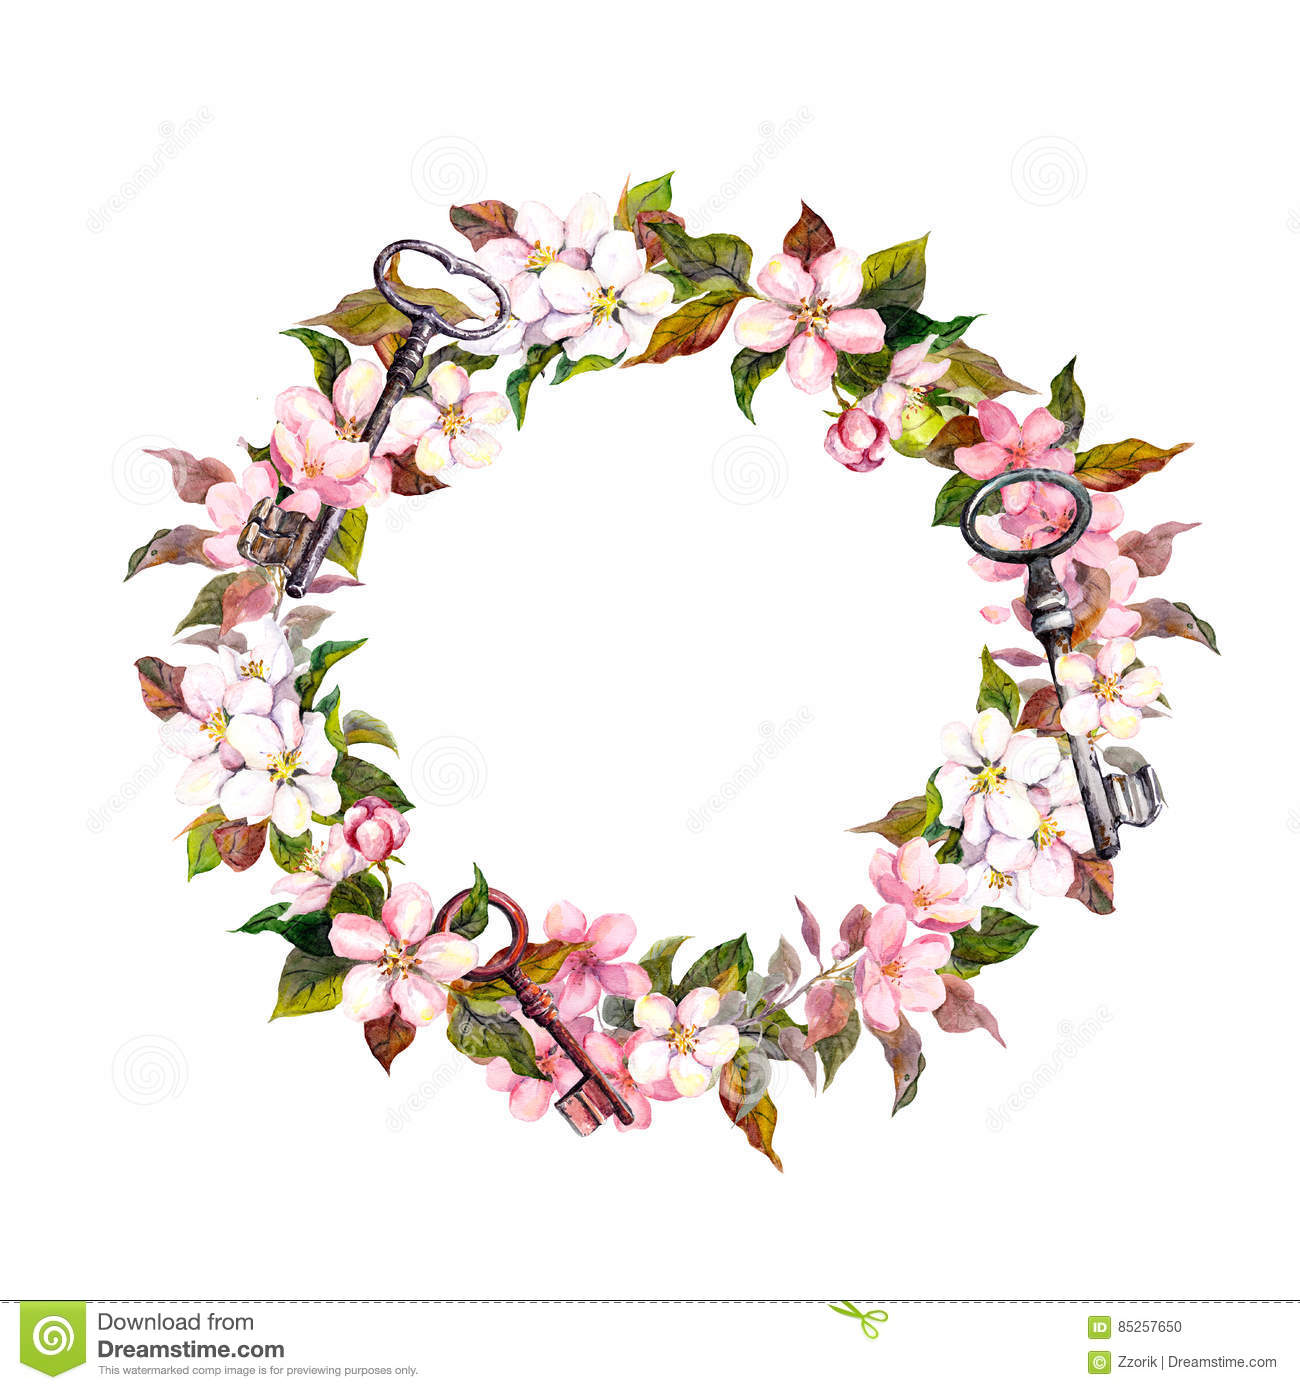 Vintage Floral Wreath With Spring Flowers Feathers Keys